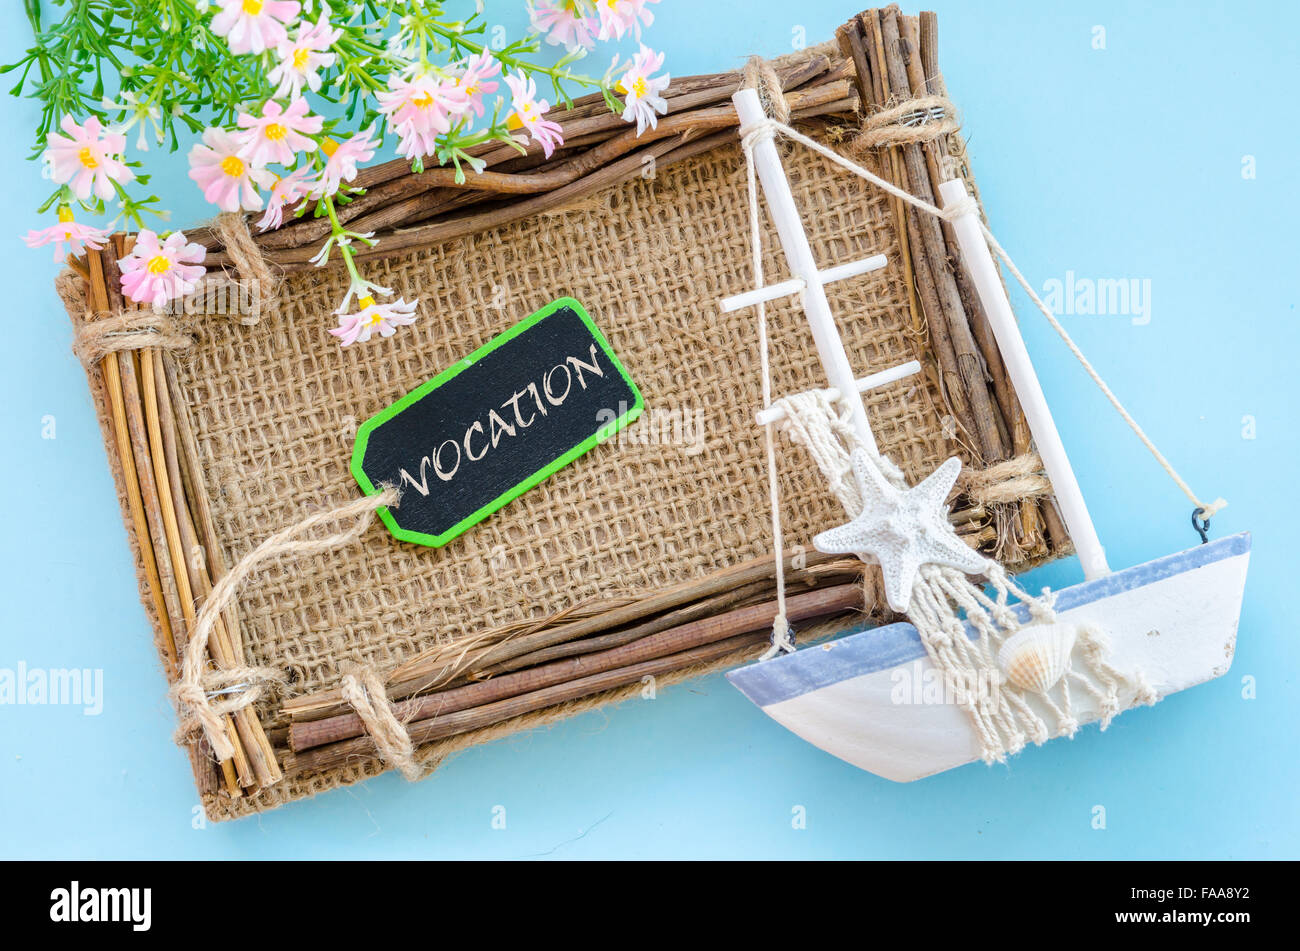 Vocation wording tag with decoration on blue background. - Stock Image